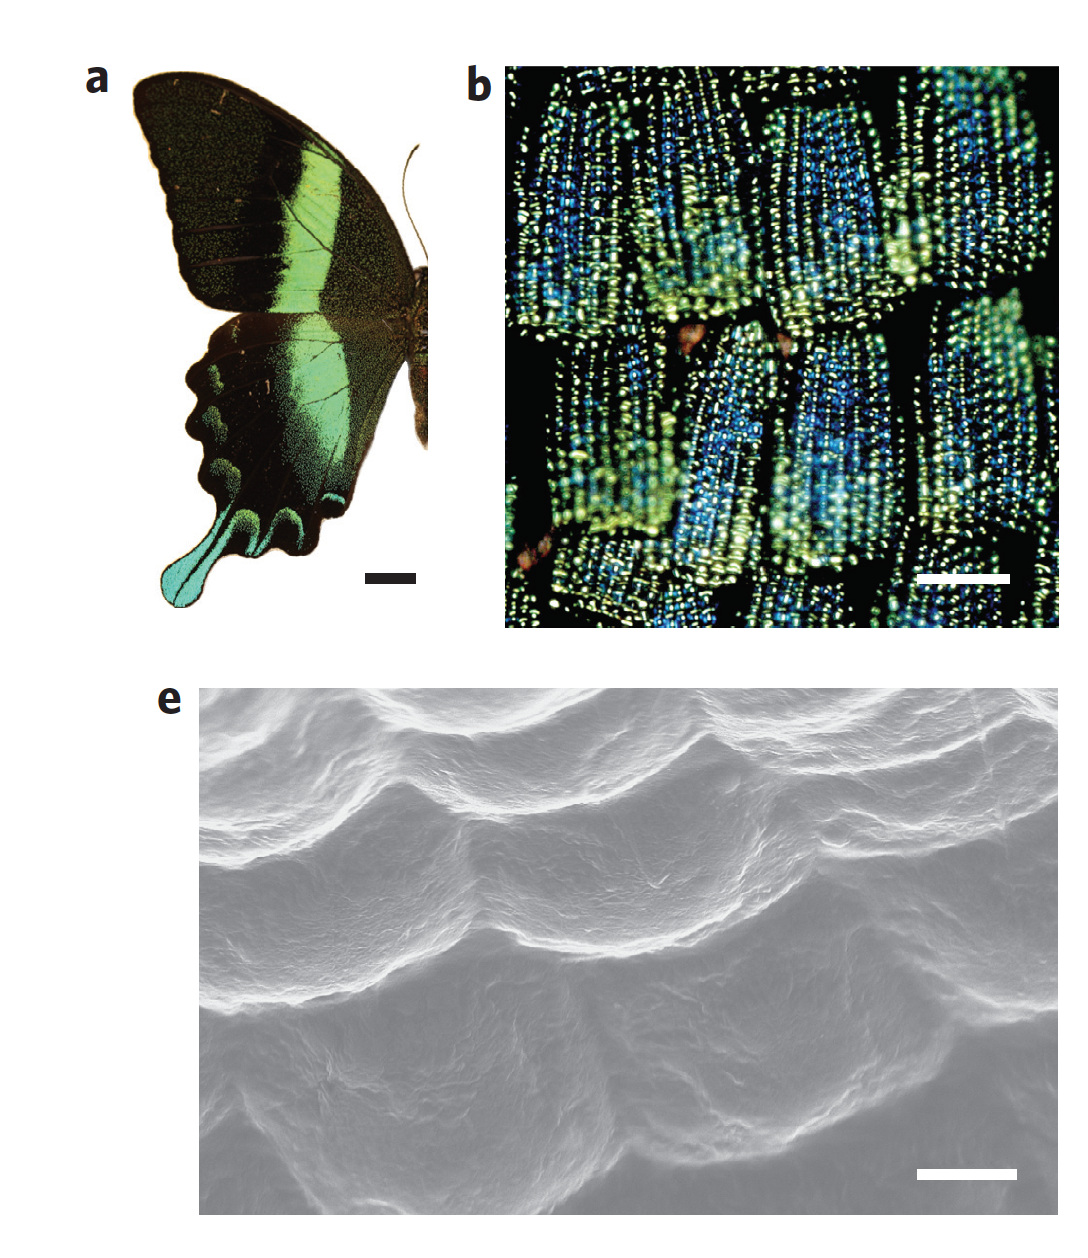 """2. Volsun, Linden. """"Butterfly Wings Idea Boosts Hydrogen Production."""" Butterfly Wings Idea Boosts Hydrogen Production 